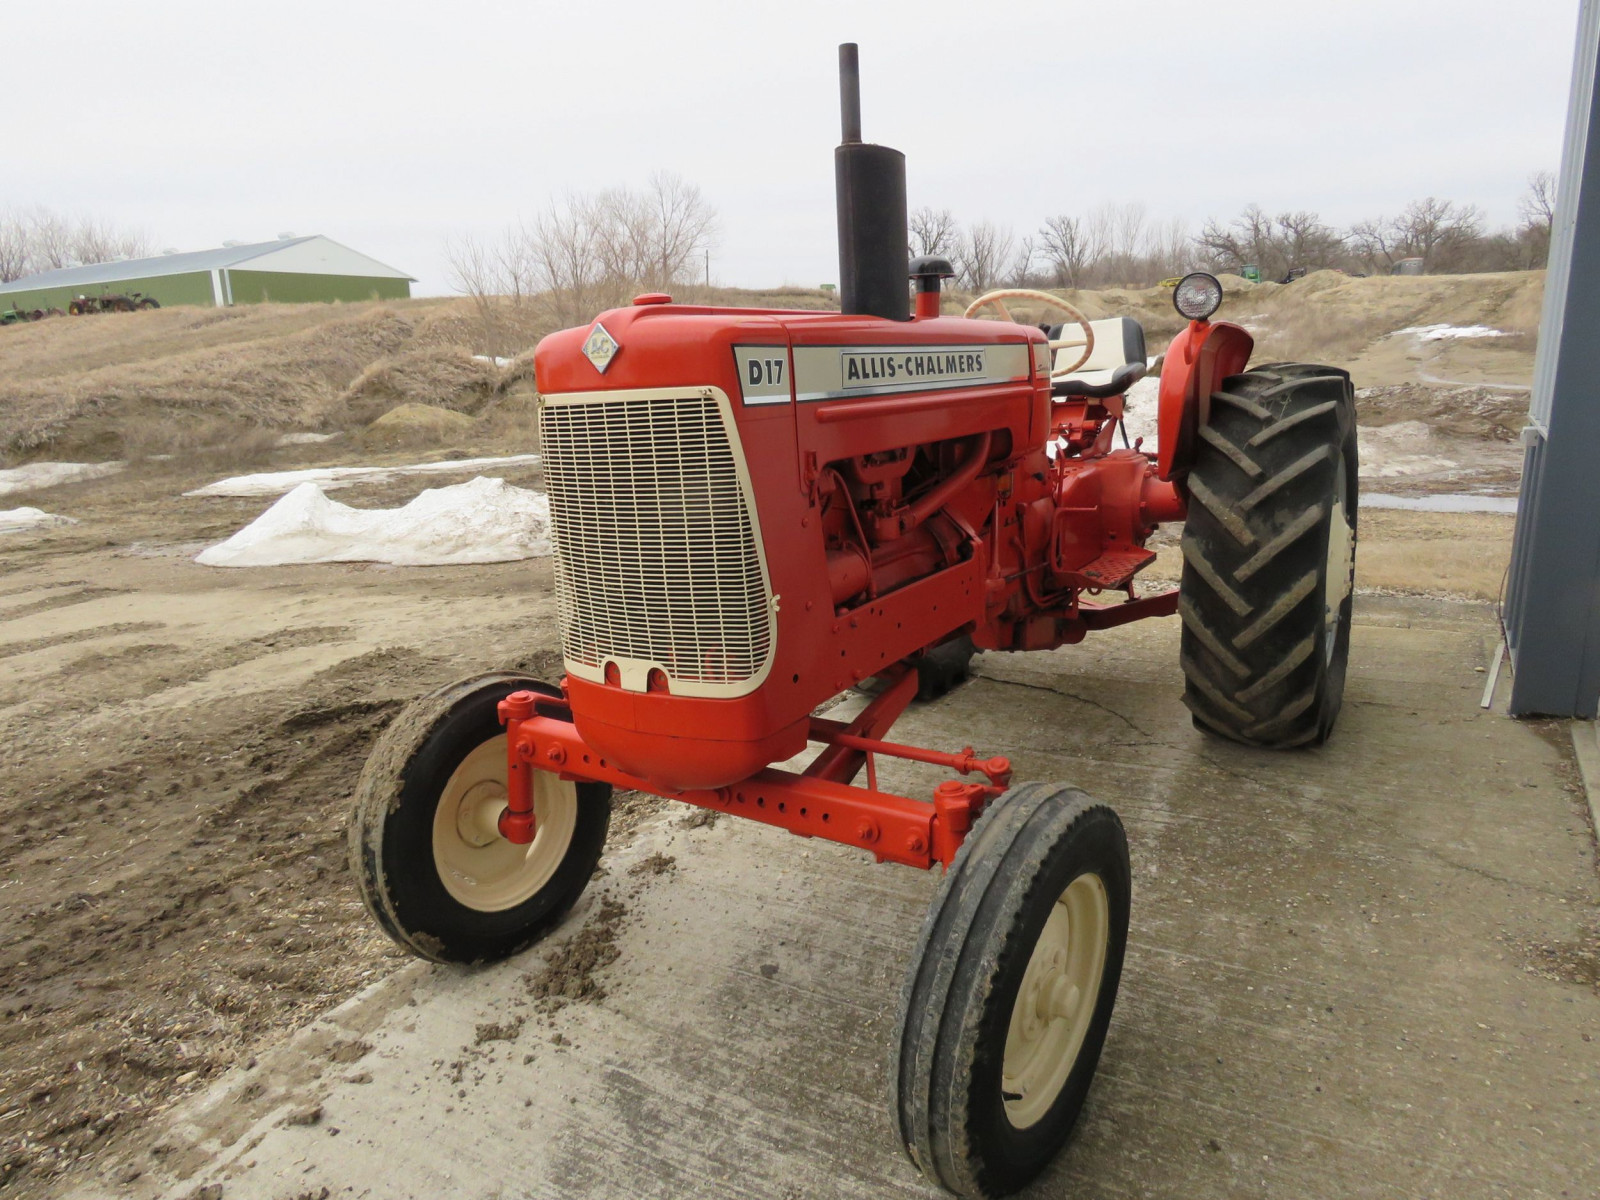 Allis Chalmers D17 Tractor - Image 9